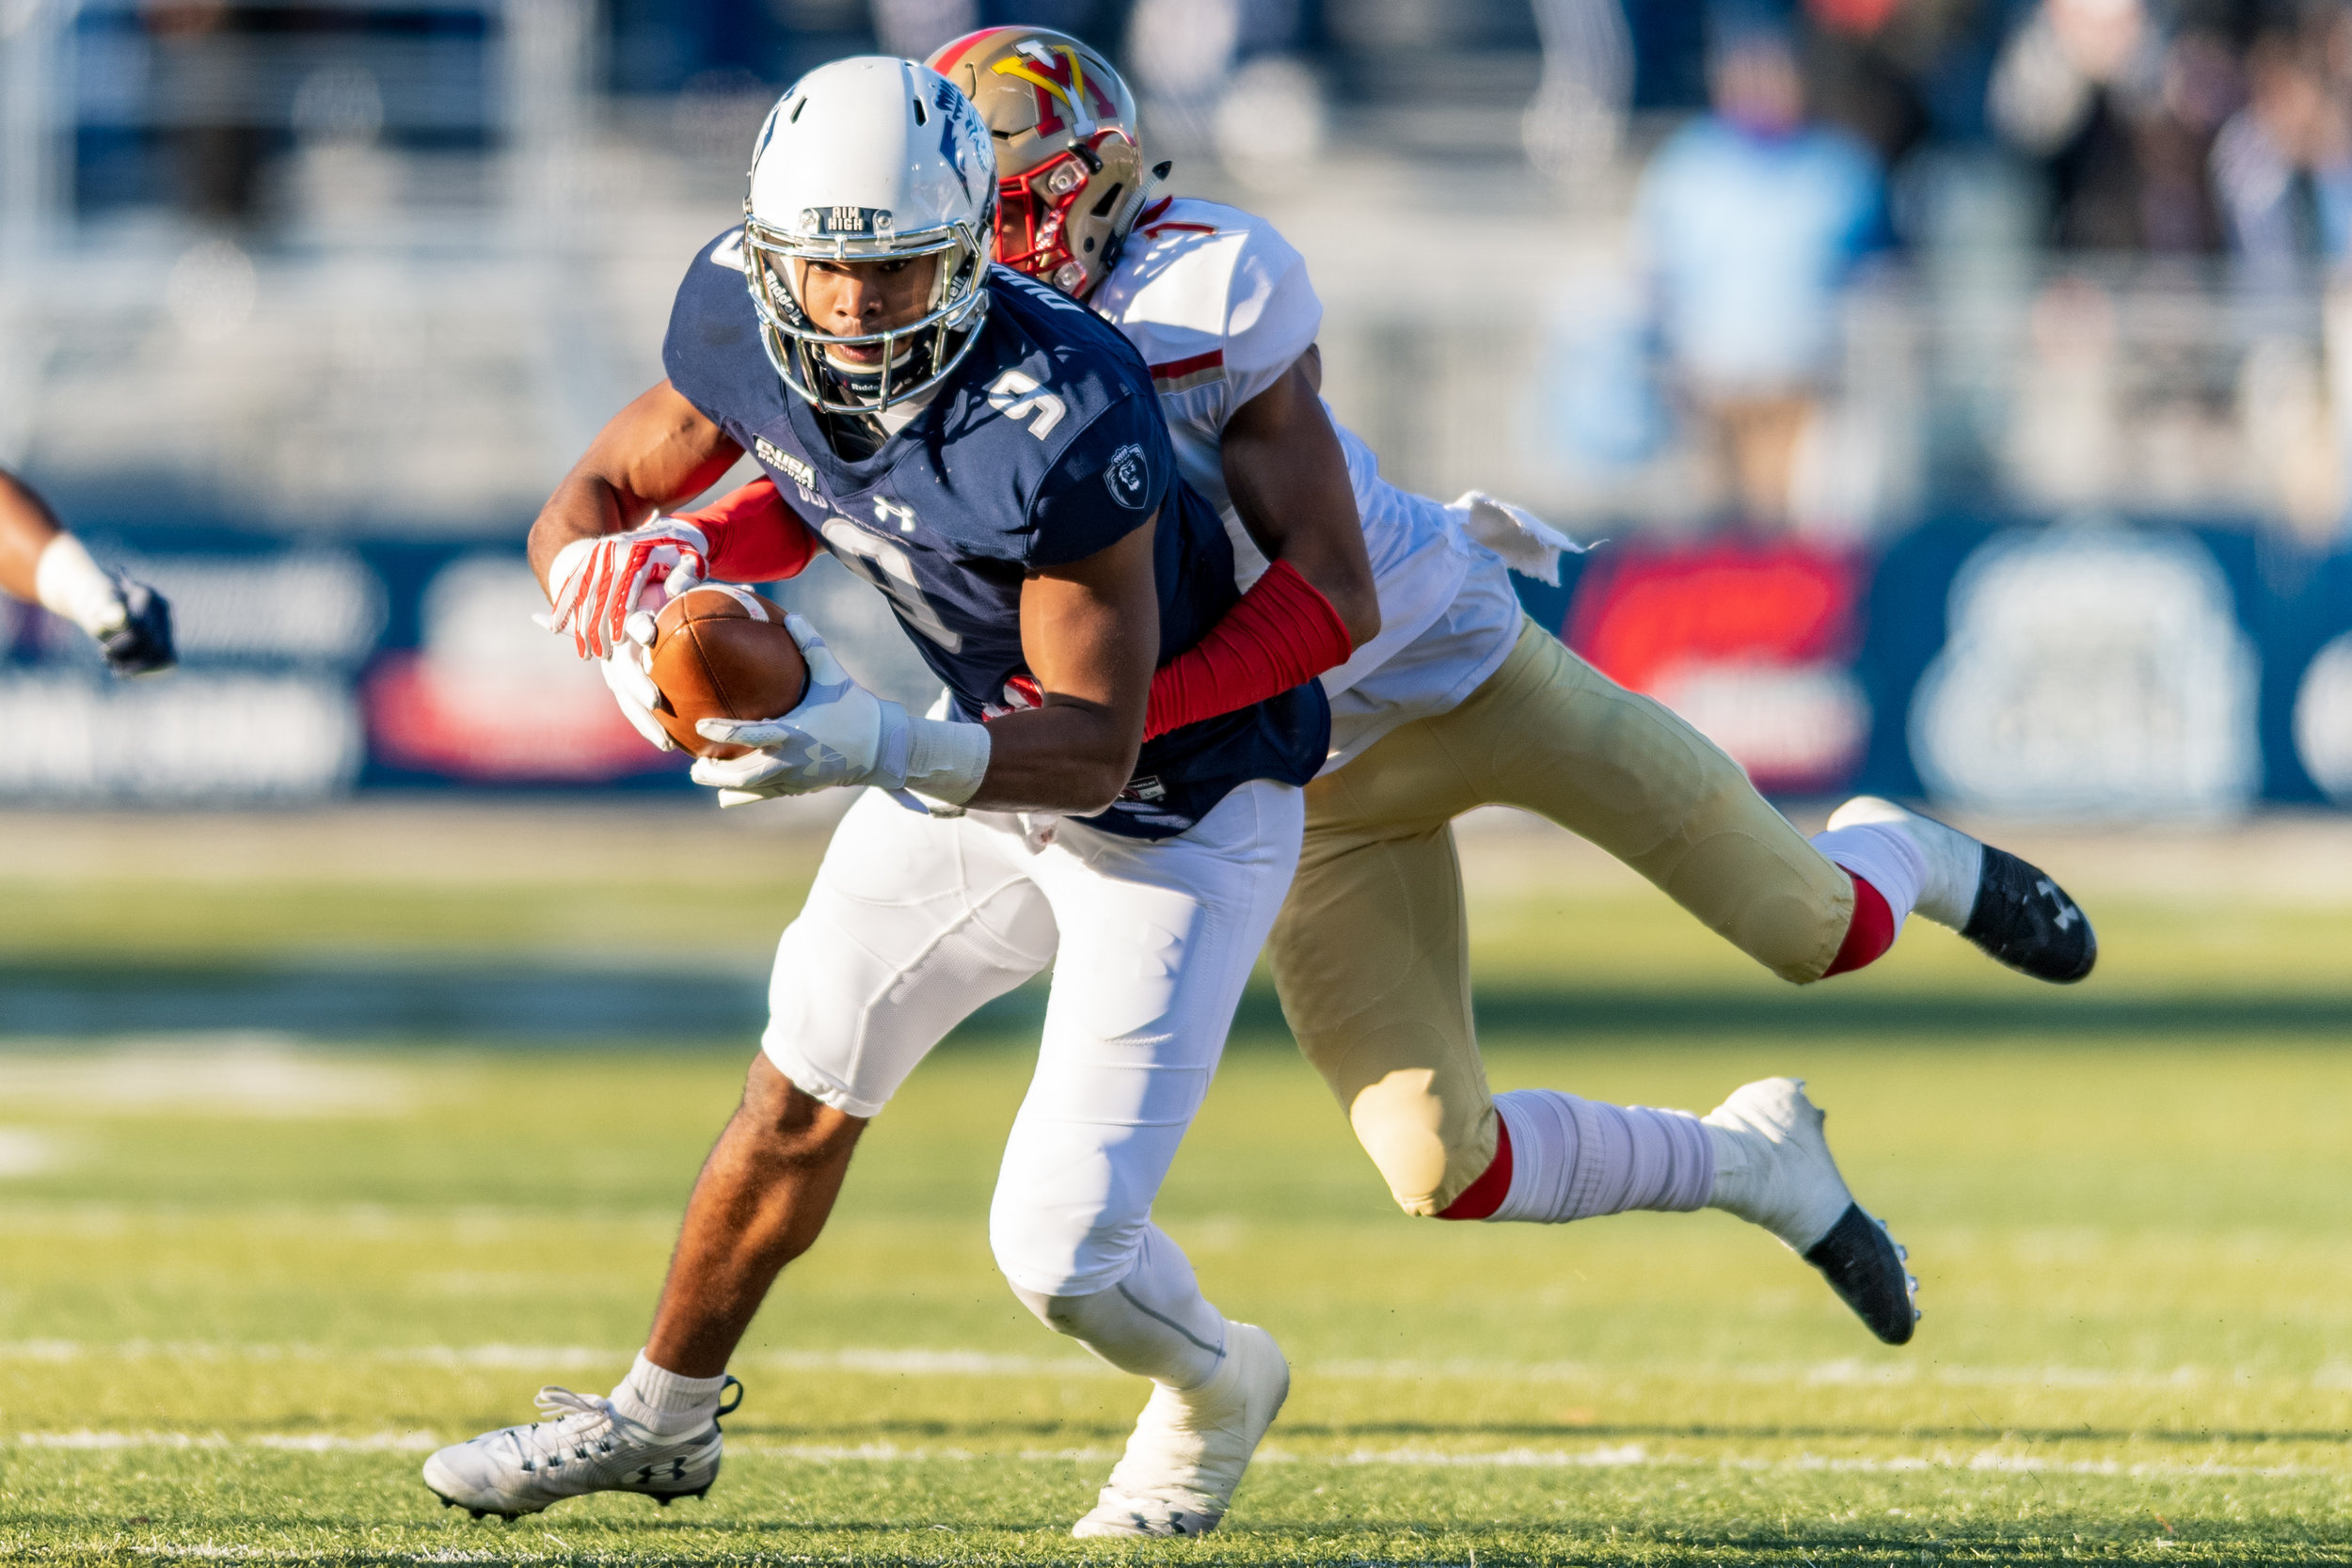 Virginia Military Institute Keydets defensive back Kaleb Tucker (1) works to tackle Old Dominion Monarchs wide receiver Jonathan Duhart (9) during the Saturday, Nov. 17, 2018 game held at Old Dominion University in Norfolk, Virginia. Old Dominion leads VMI 49 to 0 at halftime.